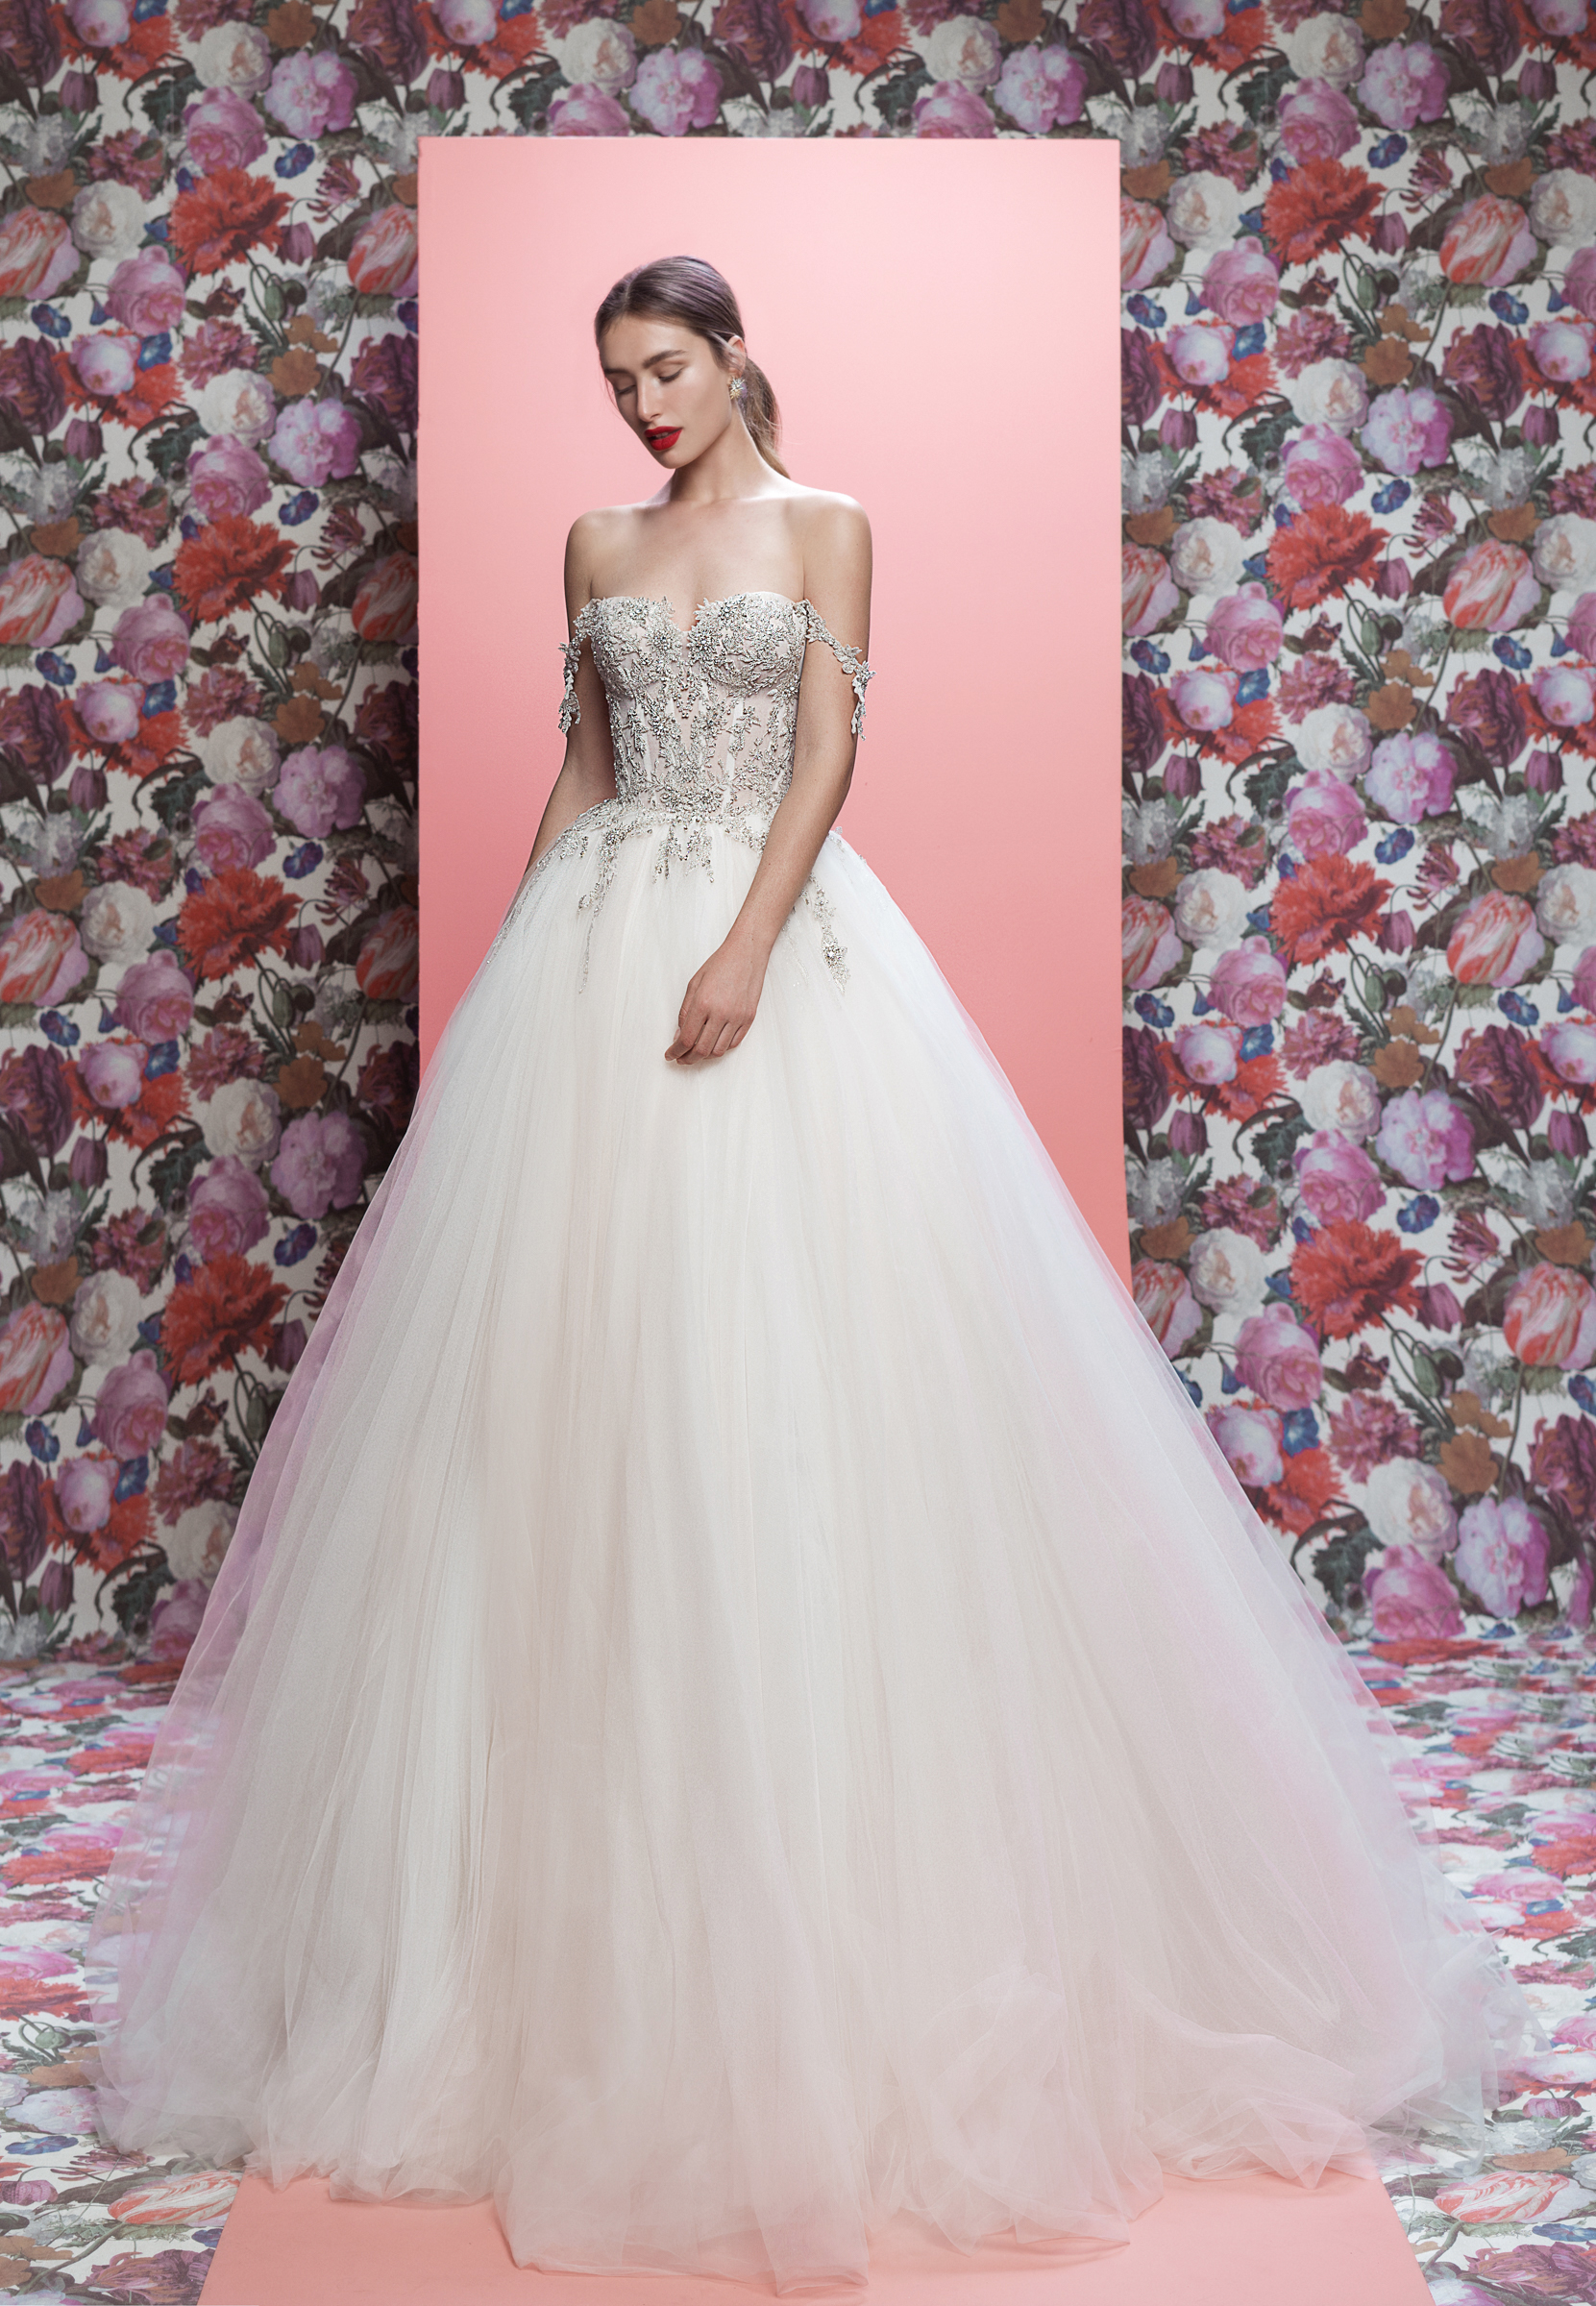 Galia Lahav wedding dress spring 2019 off-the-shoulder ball gown